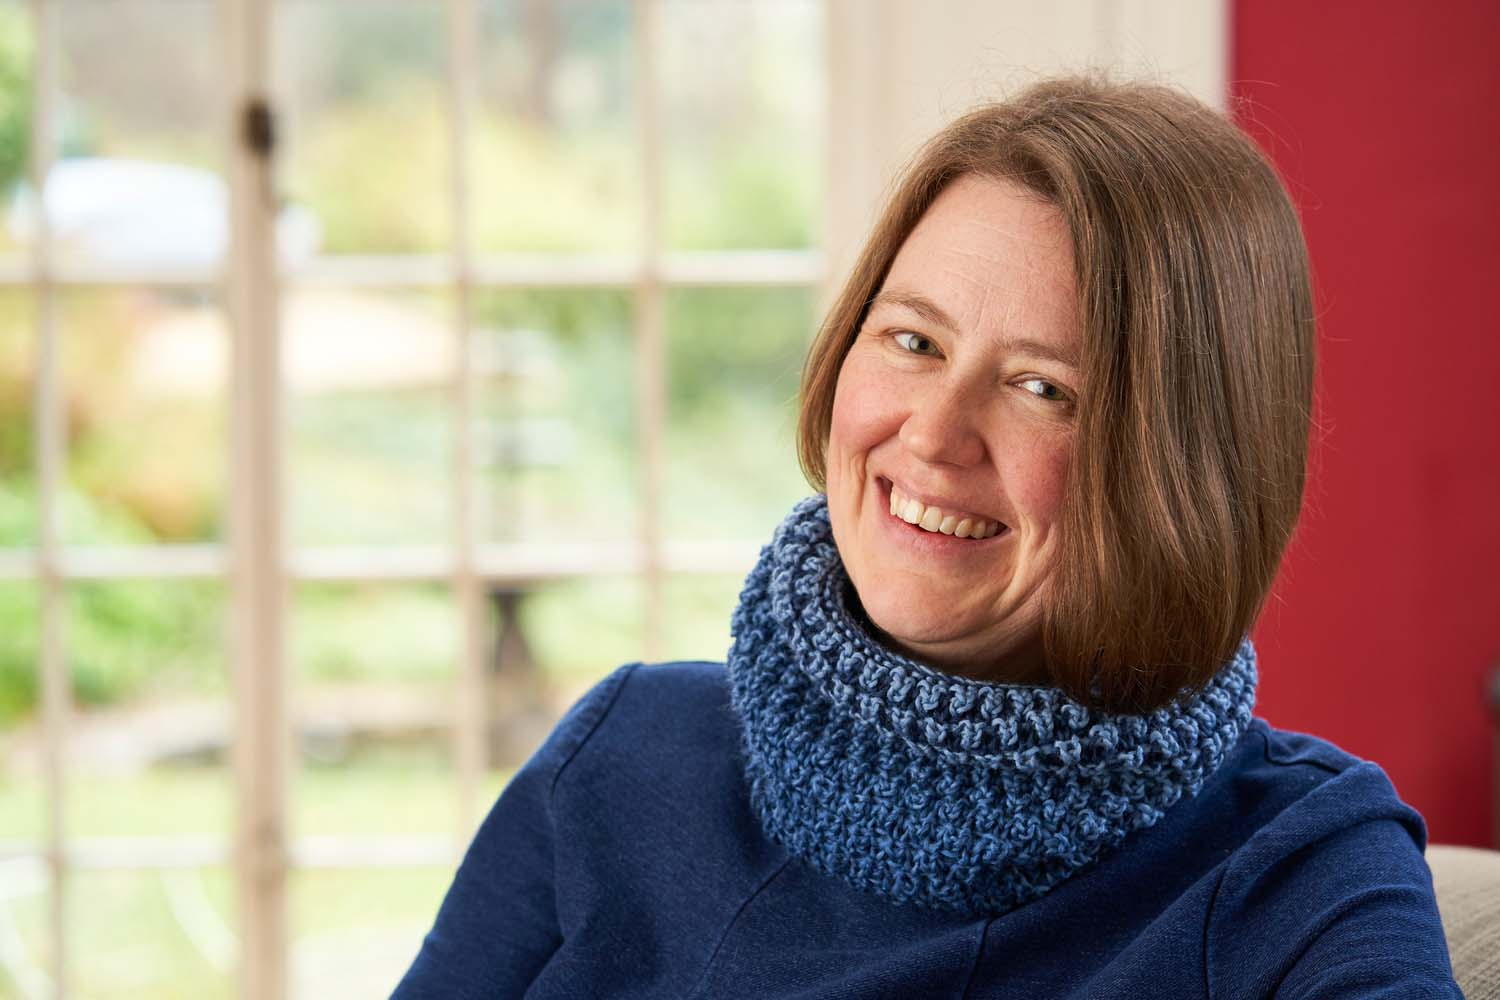 The Bramen Cowl, designed by Nancy Marchant for Boost Your Knitting. Photo credit: Jesse Wild.